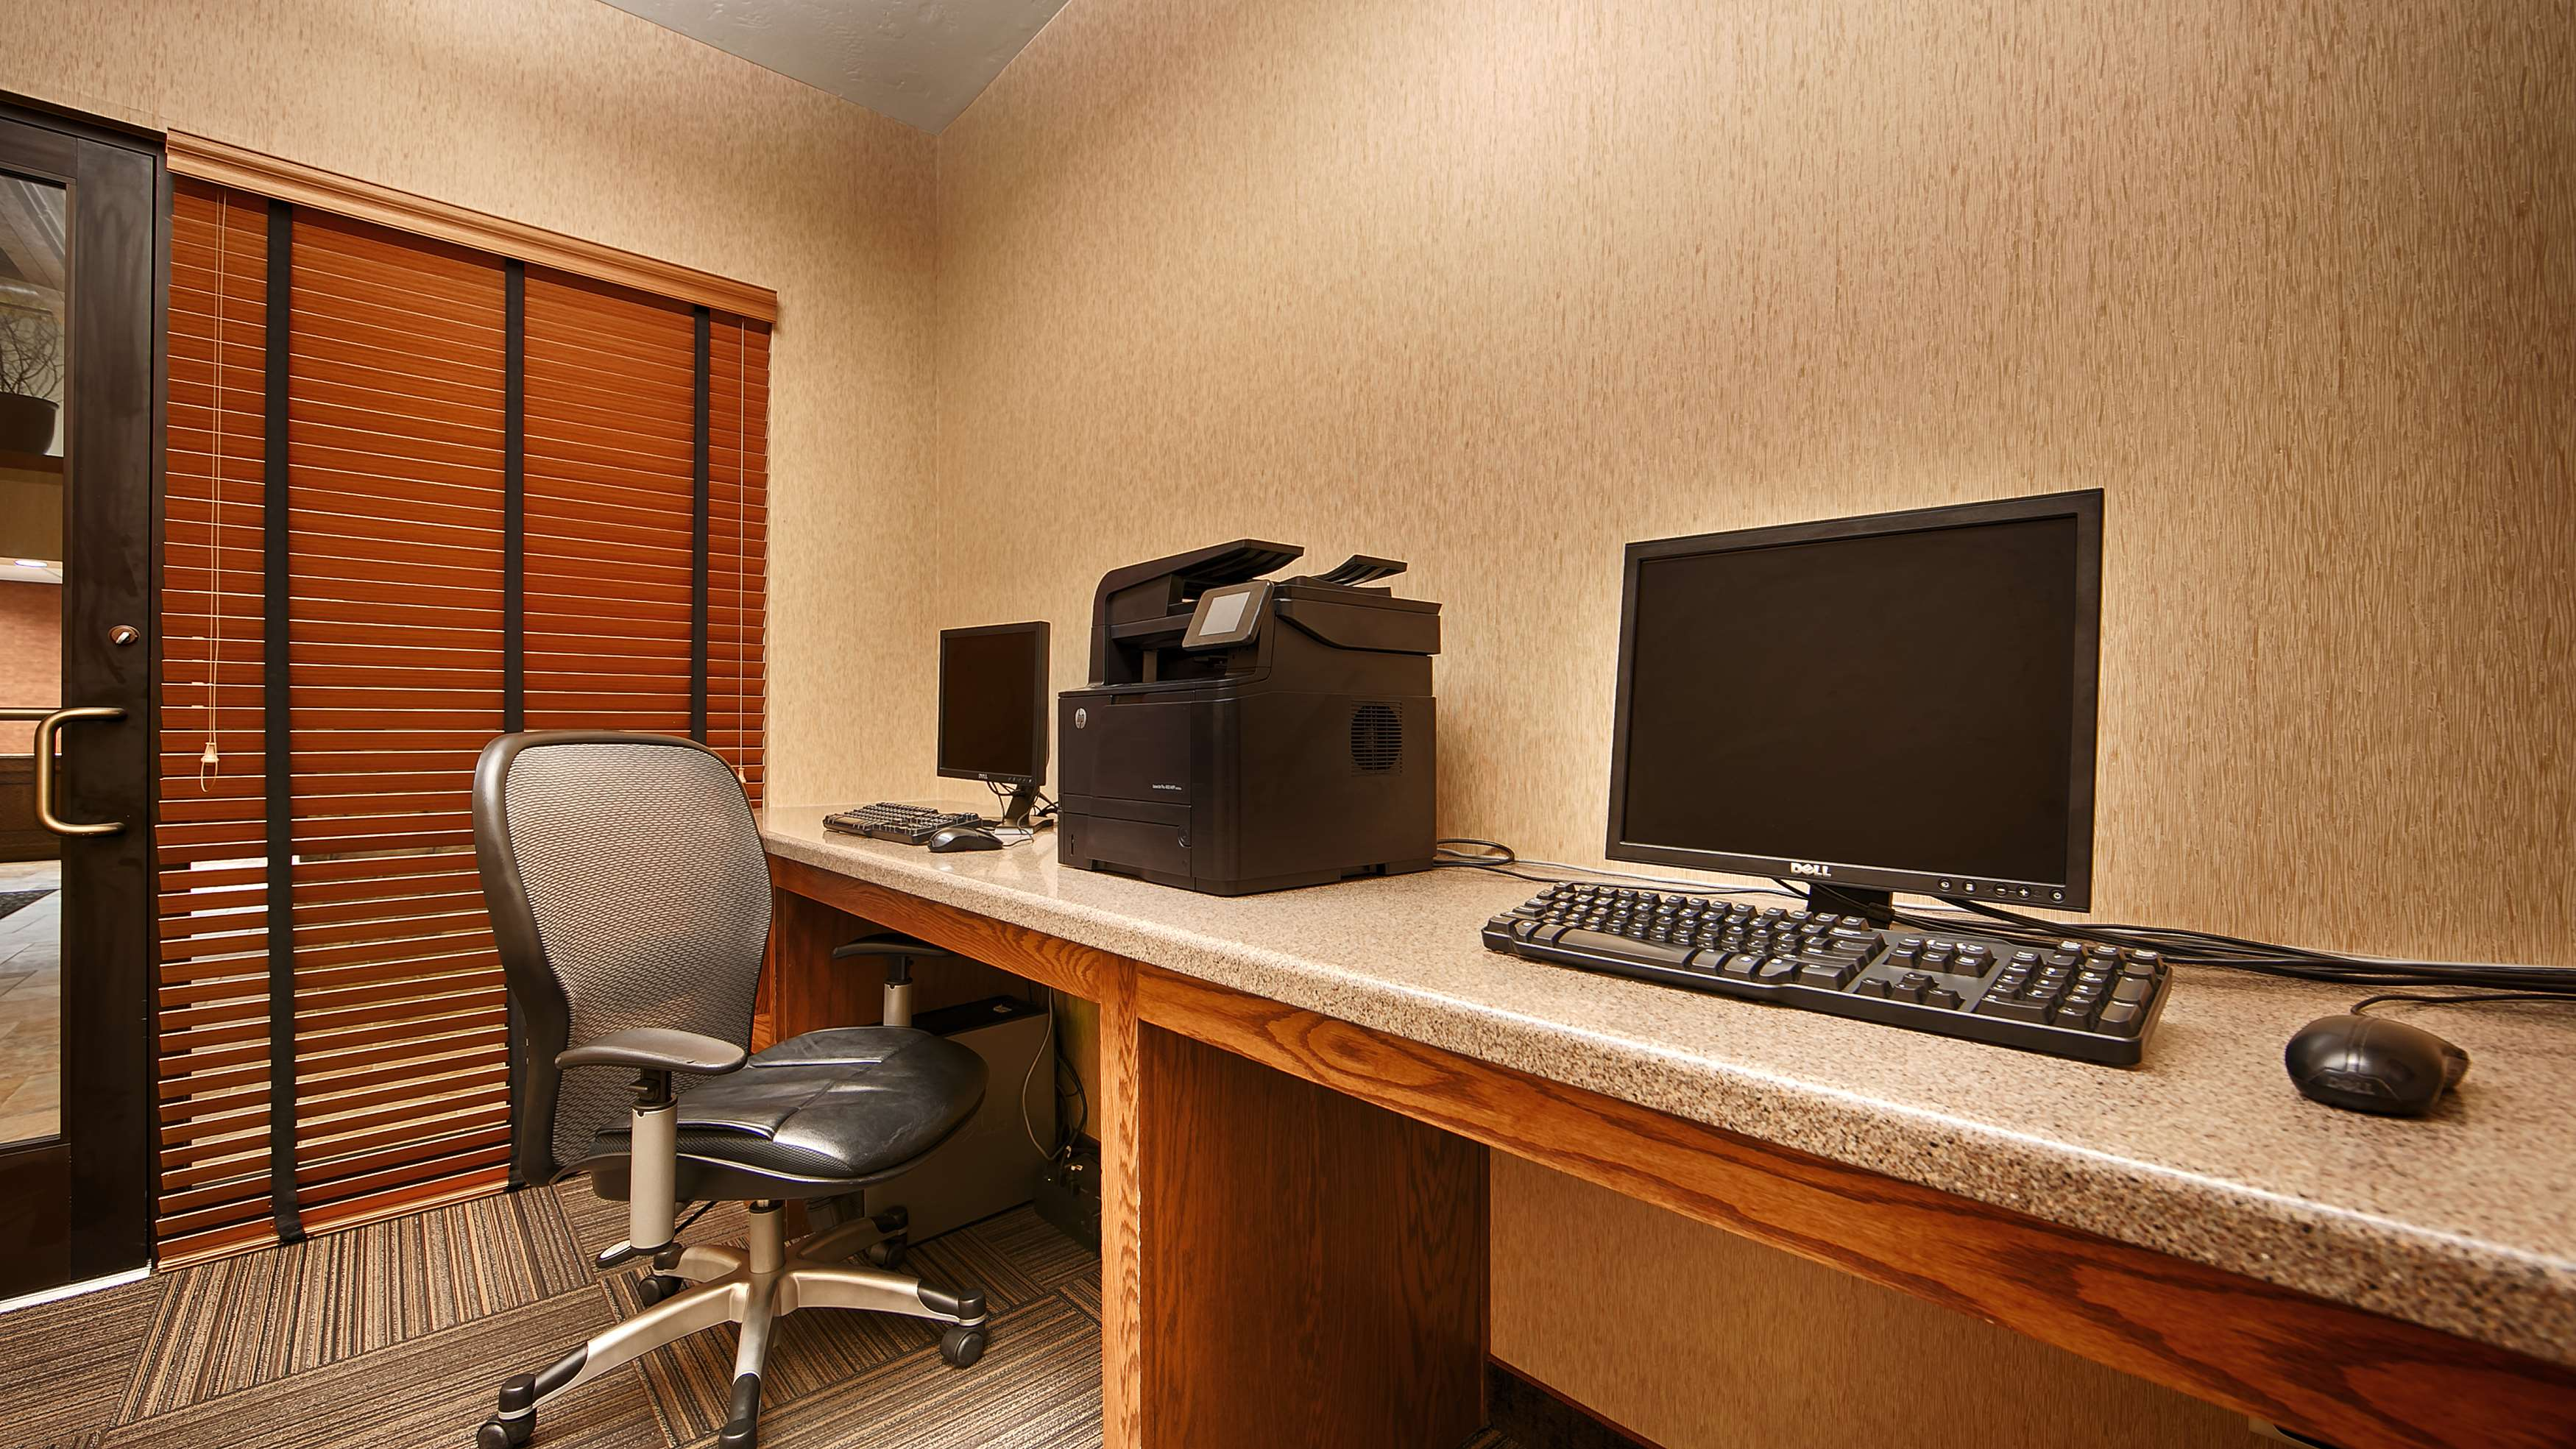 Best Western Plus Bryce Canyon Grand Hotel image 23